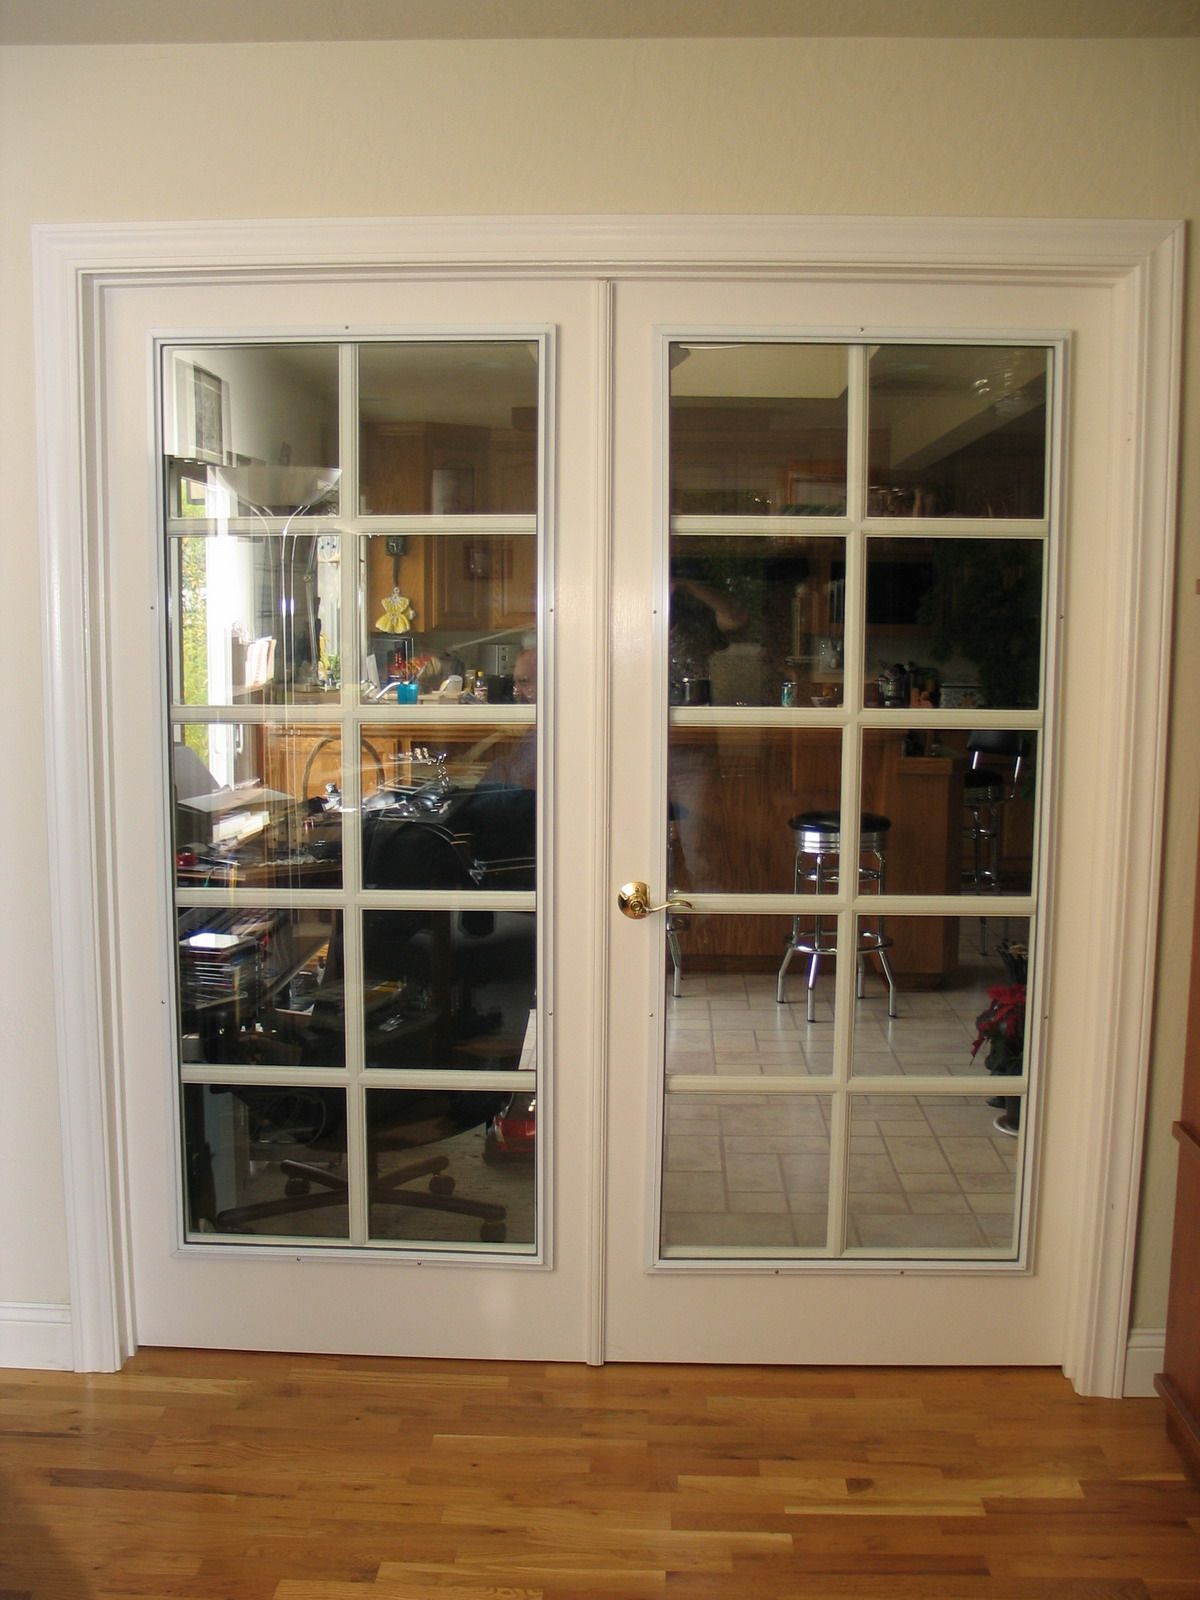 Reasons To Select Interior French Doors With Glass Designalls In 2020 Glass Pocket Doors Double Doors Interior French Doors Exterior